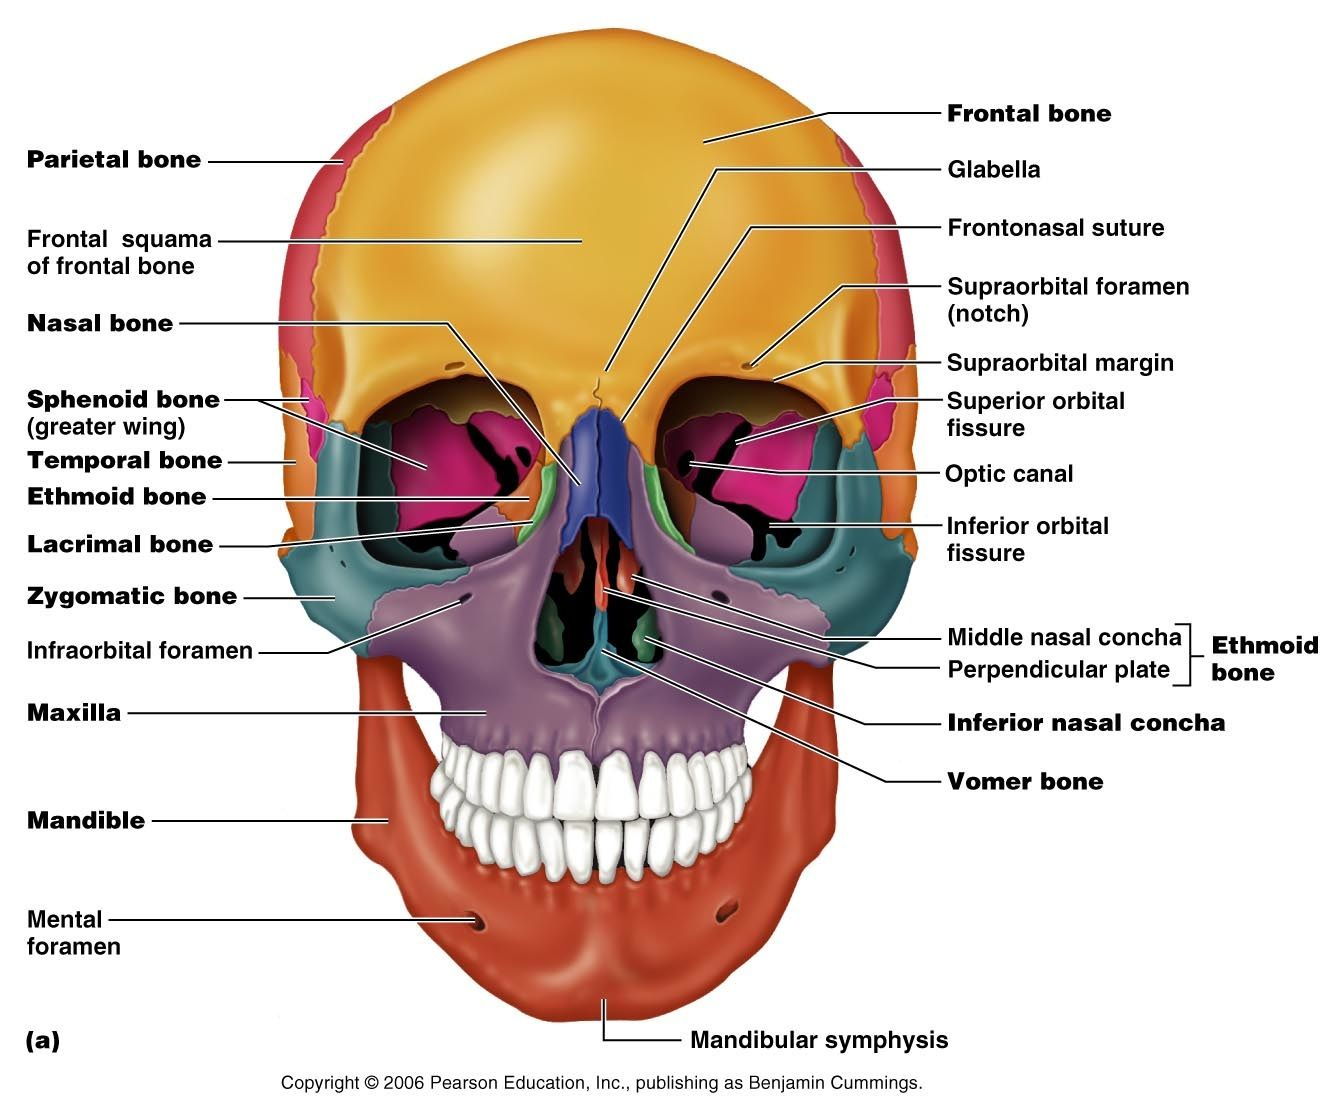 Human Anatomy Pearson Blank Skull The 206 Named Bones Of